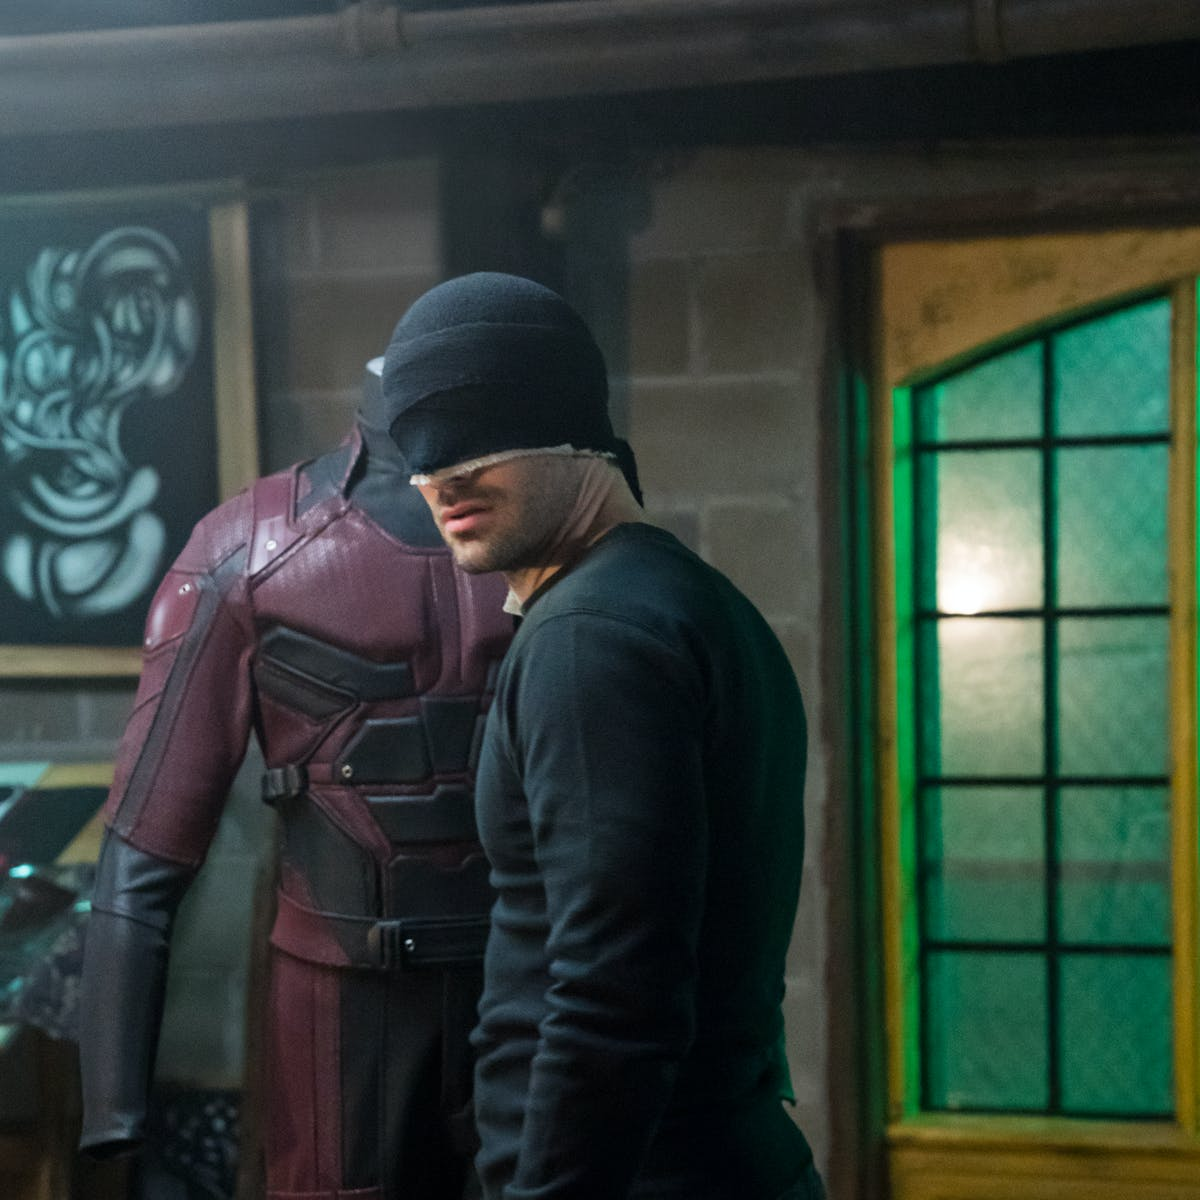 'Daredevil' Season 3 Review: Netflix Leaves the MCU, for the Better